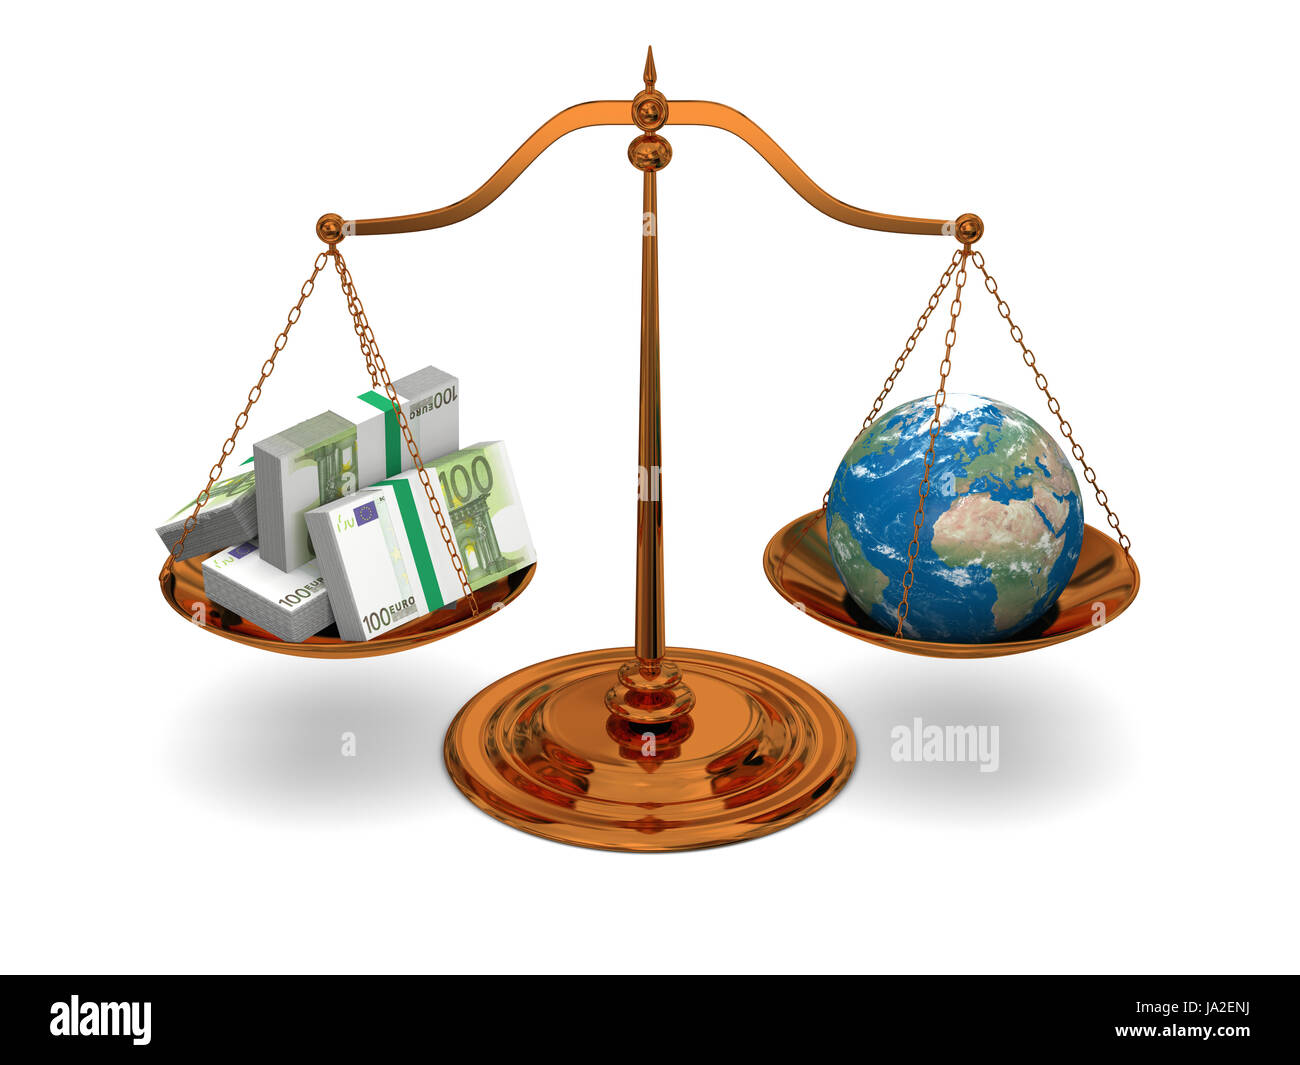 bribery, corruption, extortion, isolated, model, design, project, concept, Stock Photo